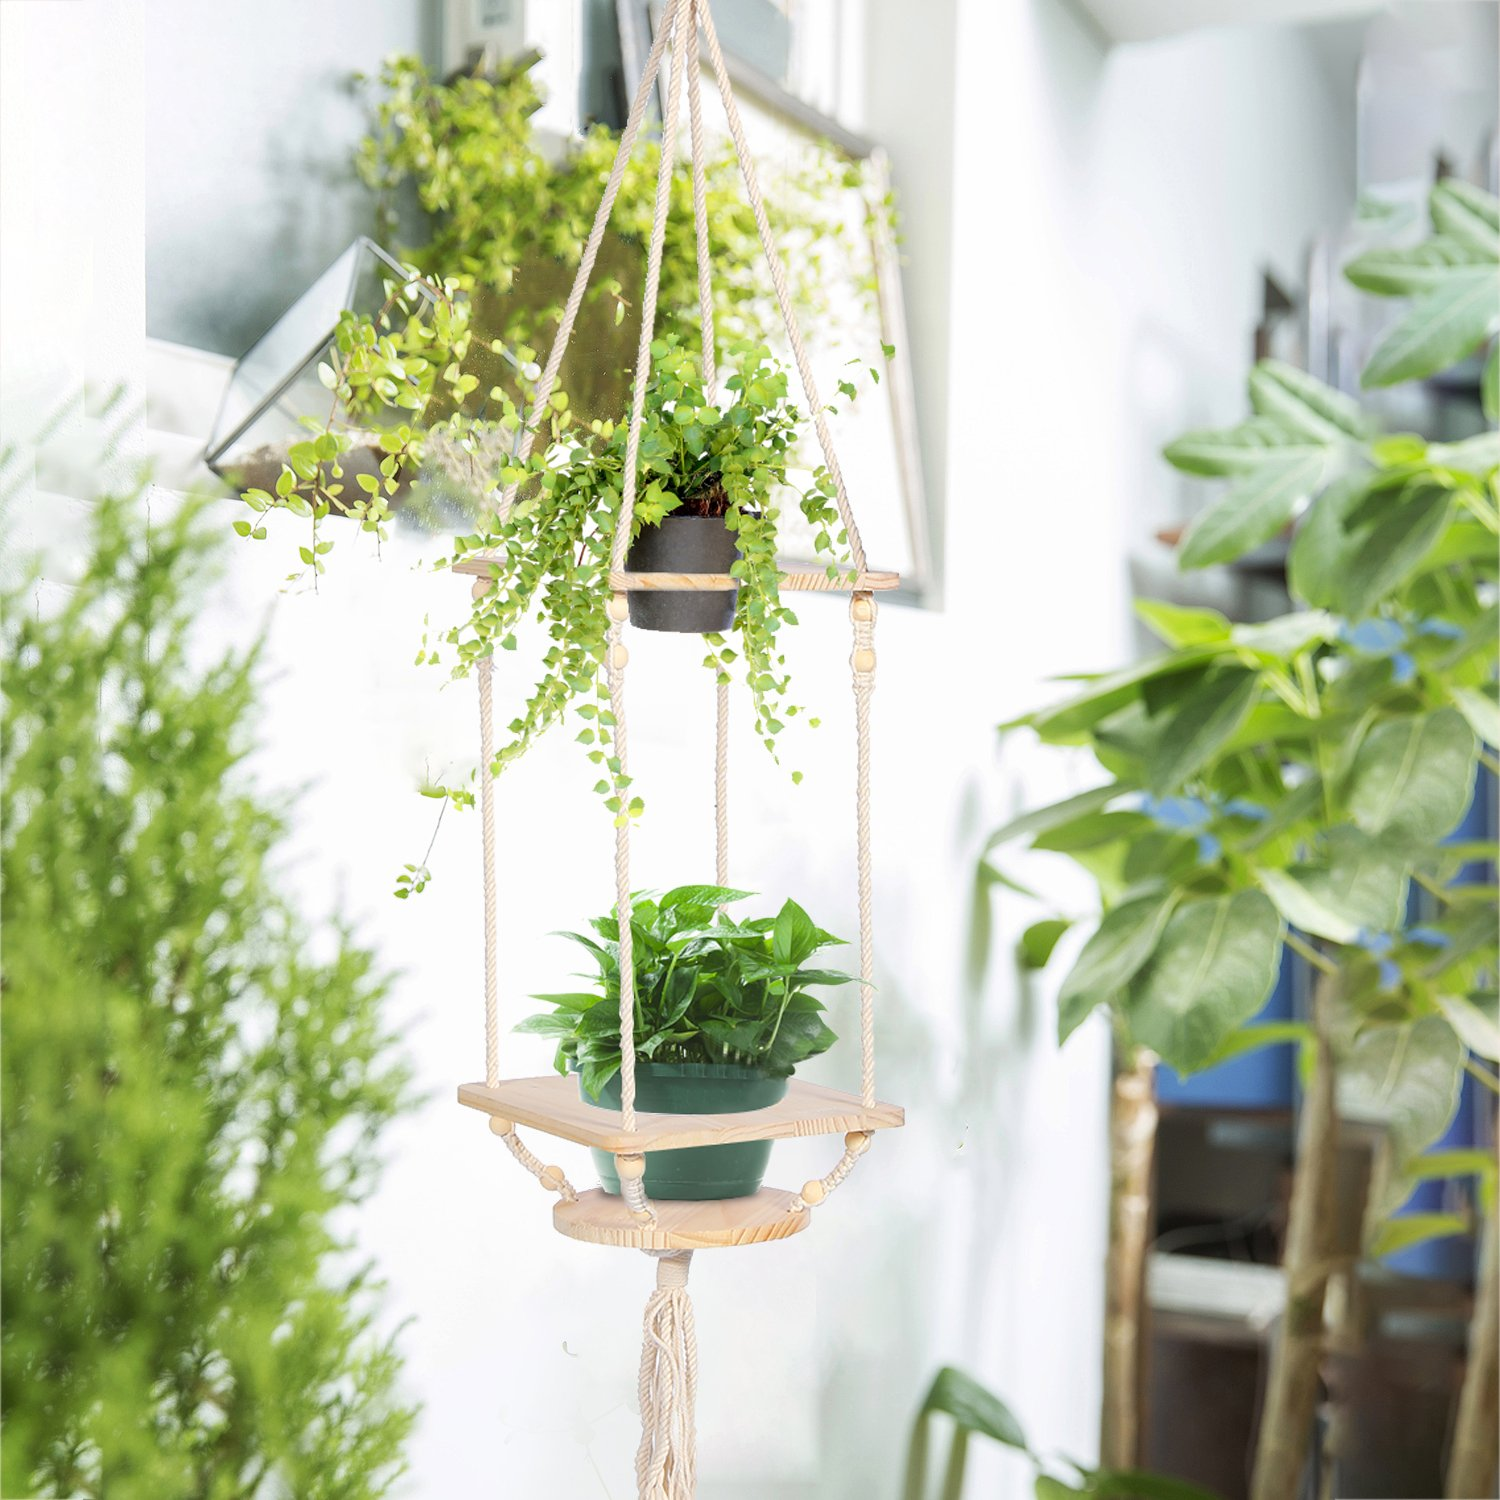 Macrame plant hanger wooden hanging planter stand pine shelf with decorative beads bohemian home decor